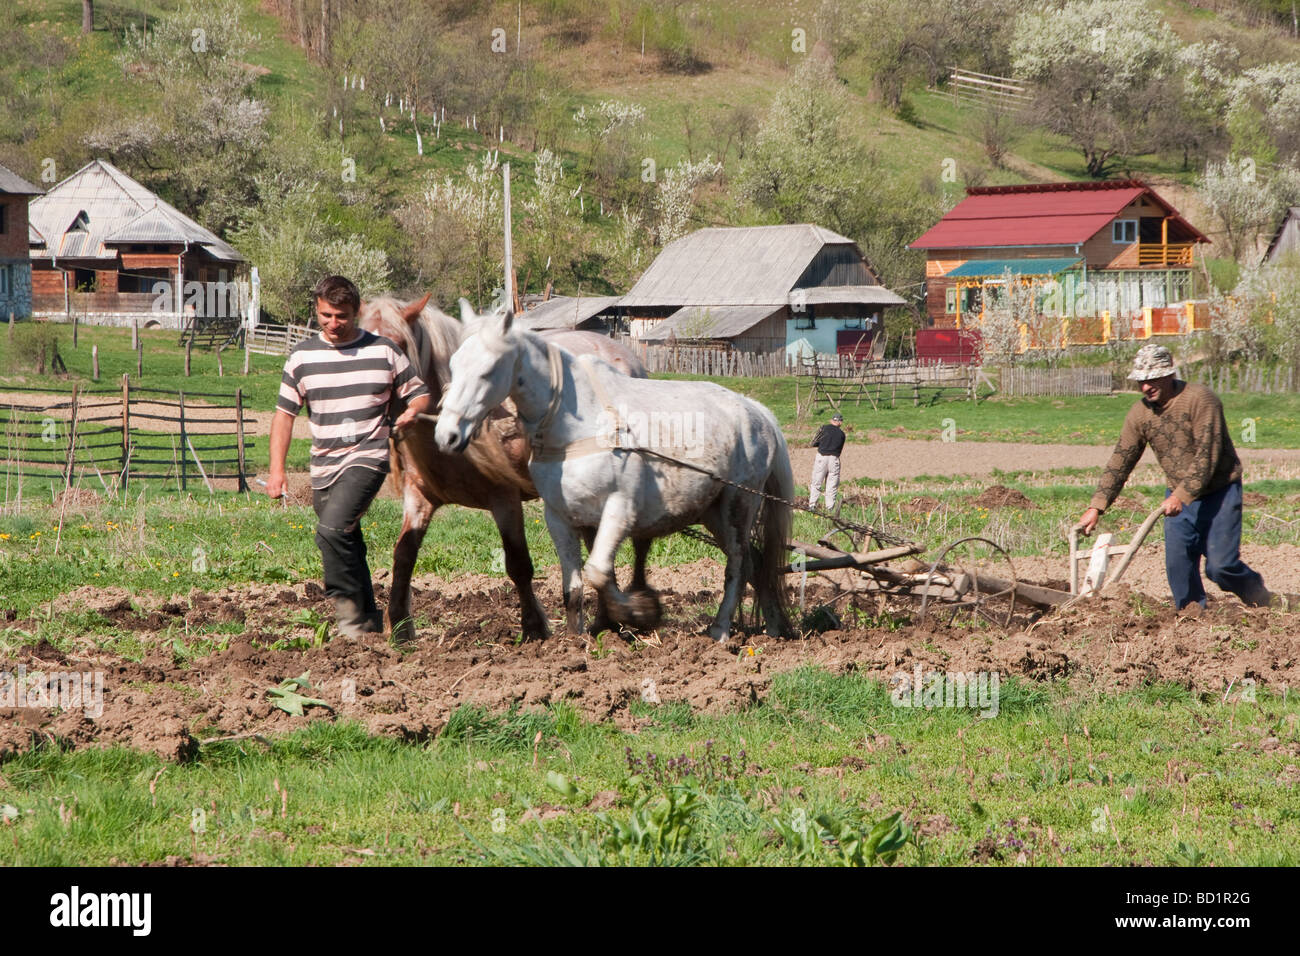 Maramures peasant father and son doing spring plowing with horse drawn plow - Stock Image